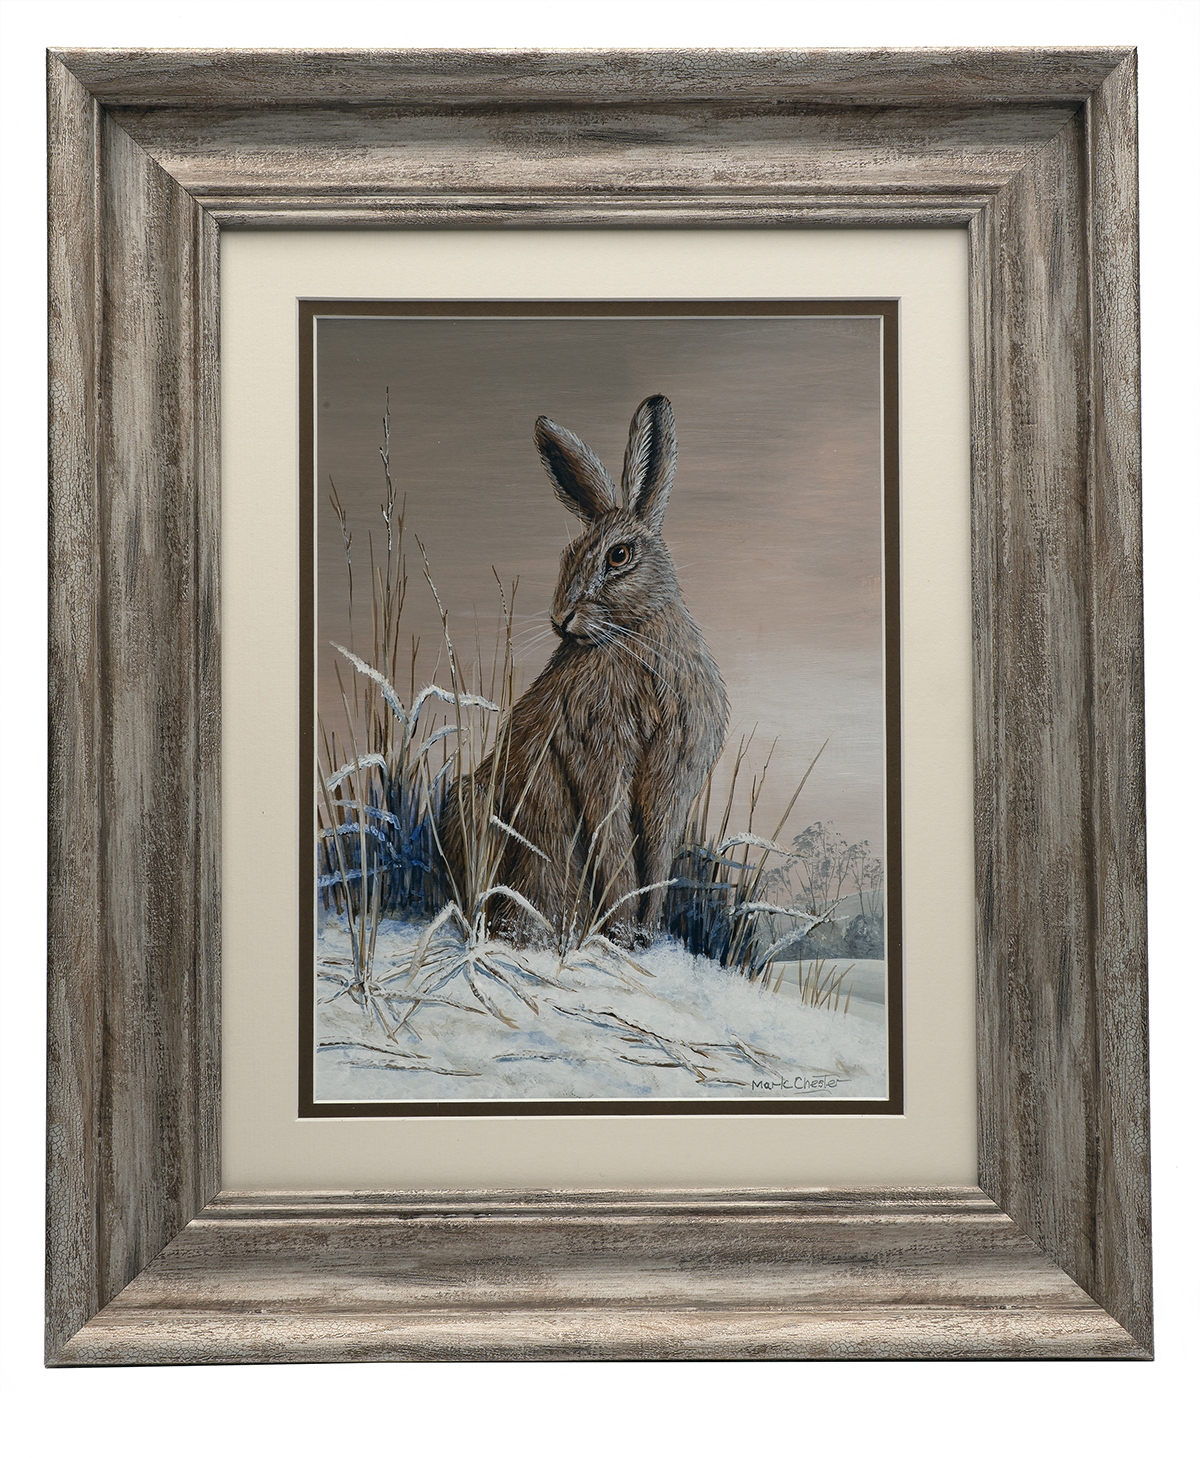 MARK CHESTER (F.W.A.S.) 'EVENING HARE', an original painting signed by the artist, showing a hare in